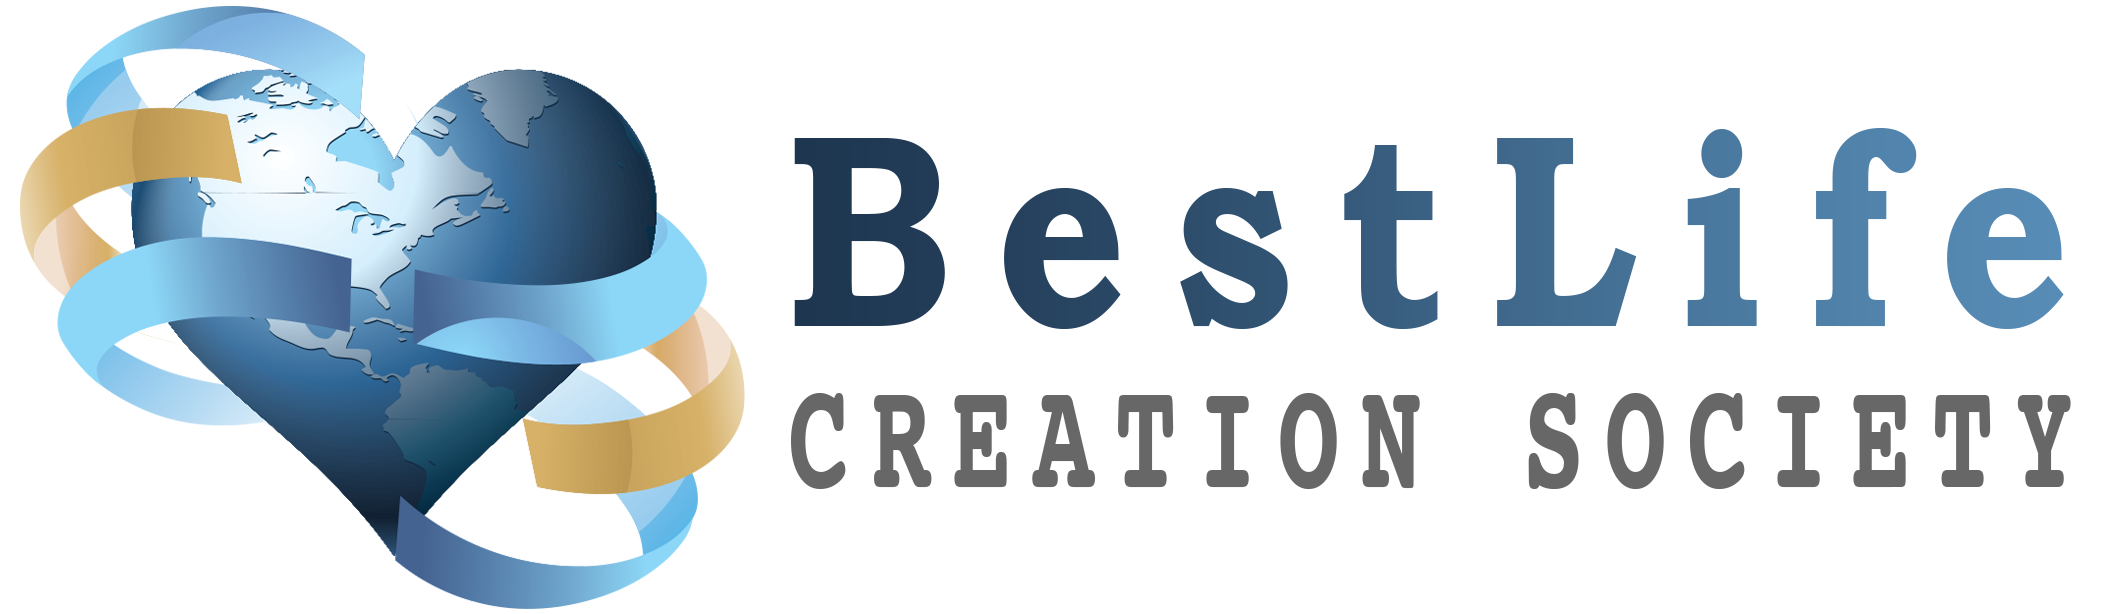 BestLife-Creation-Society.NoTag_.png